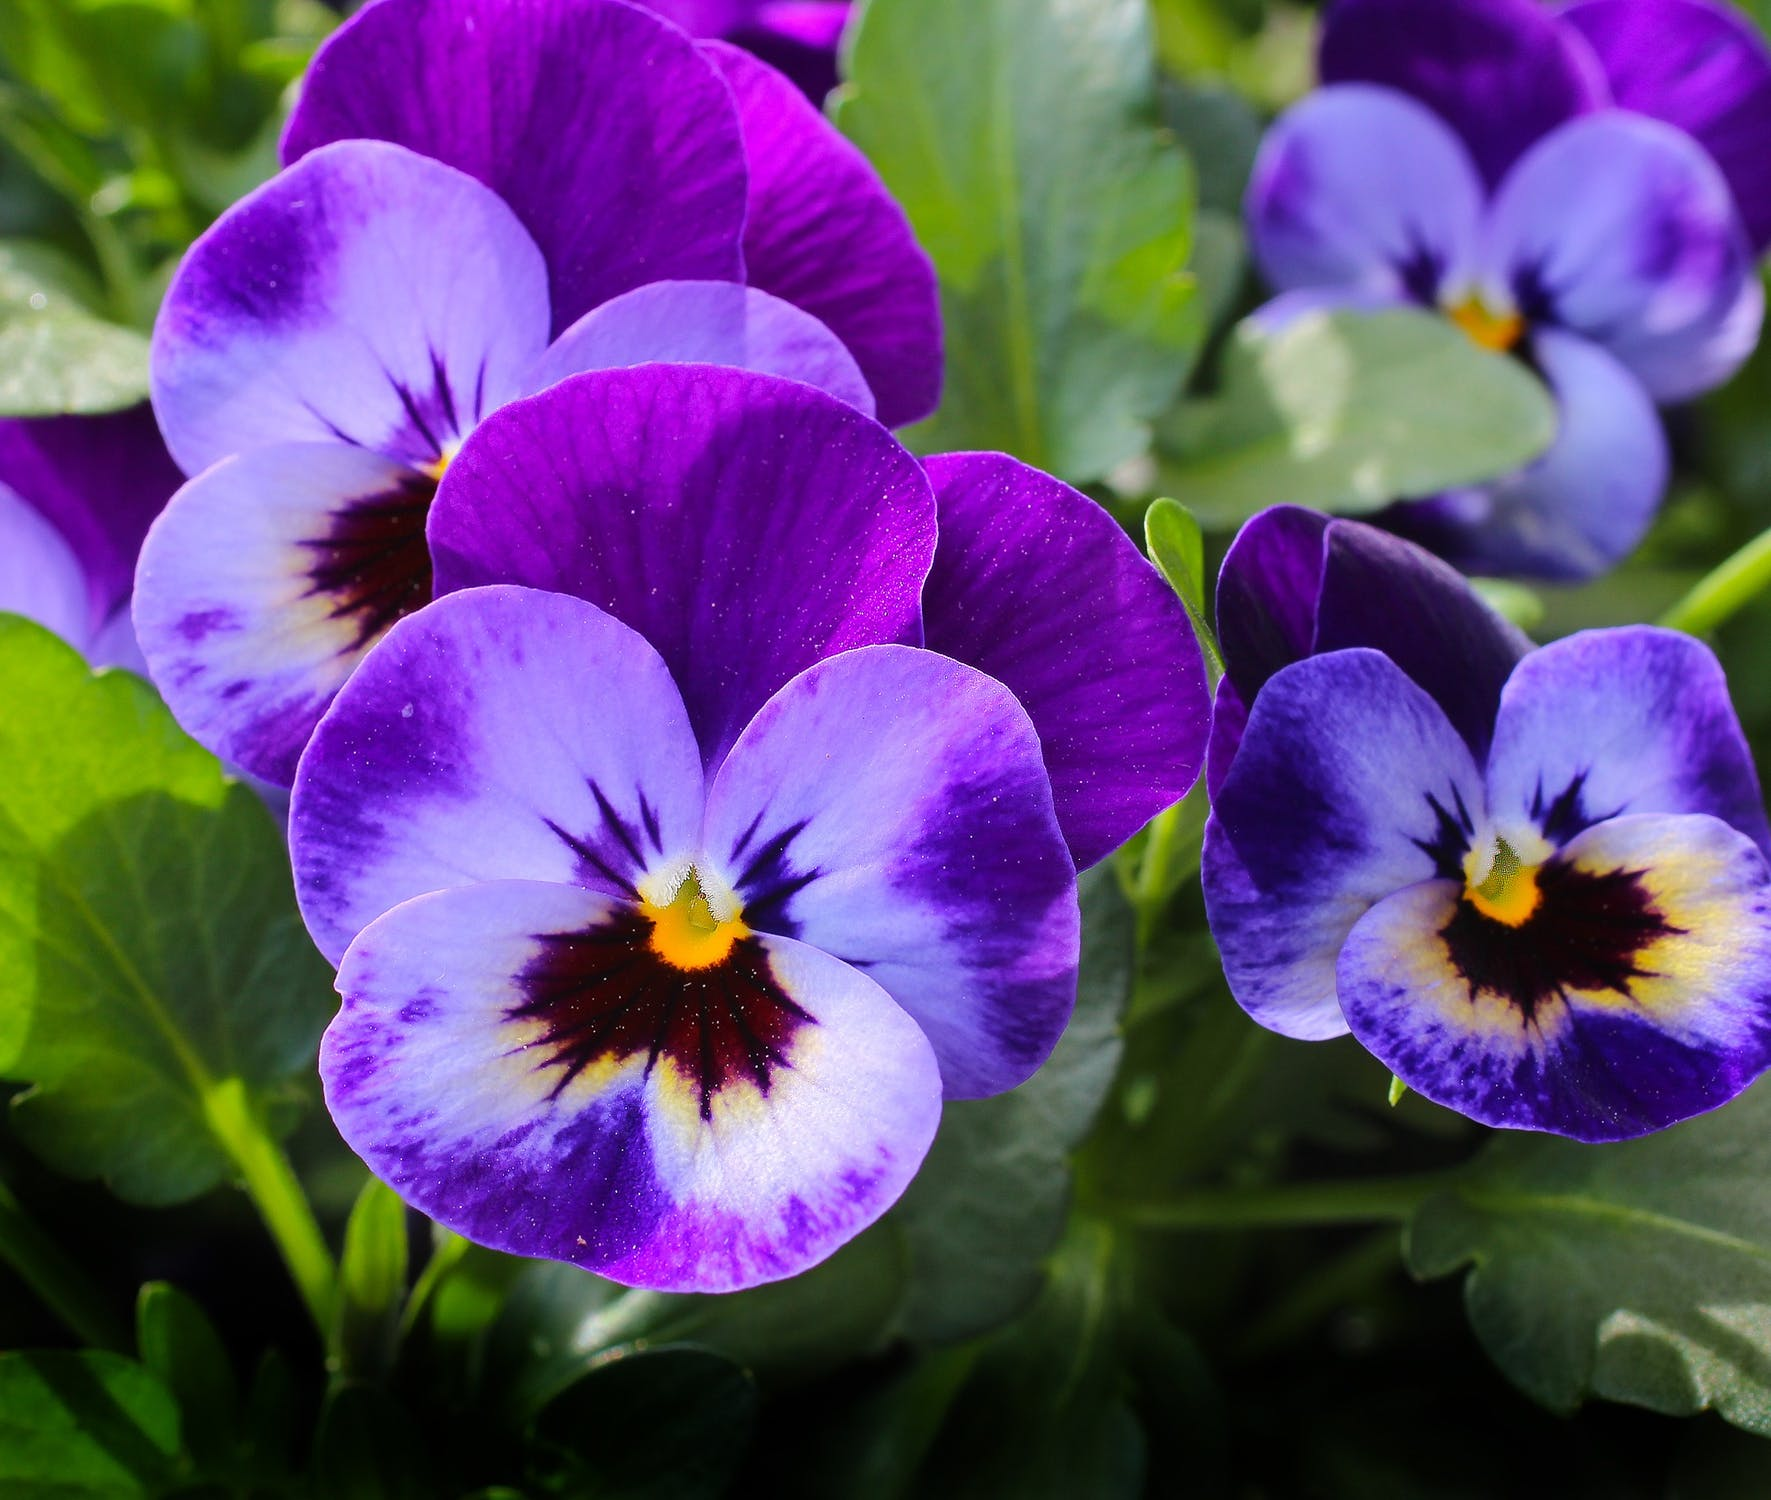 pansy-flowers-plant-nature-57394.jpeg